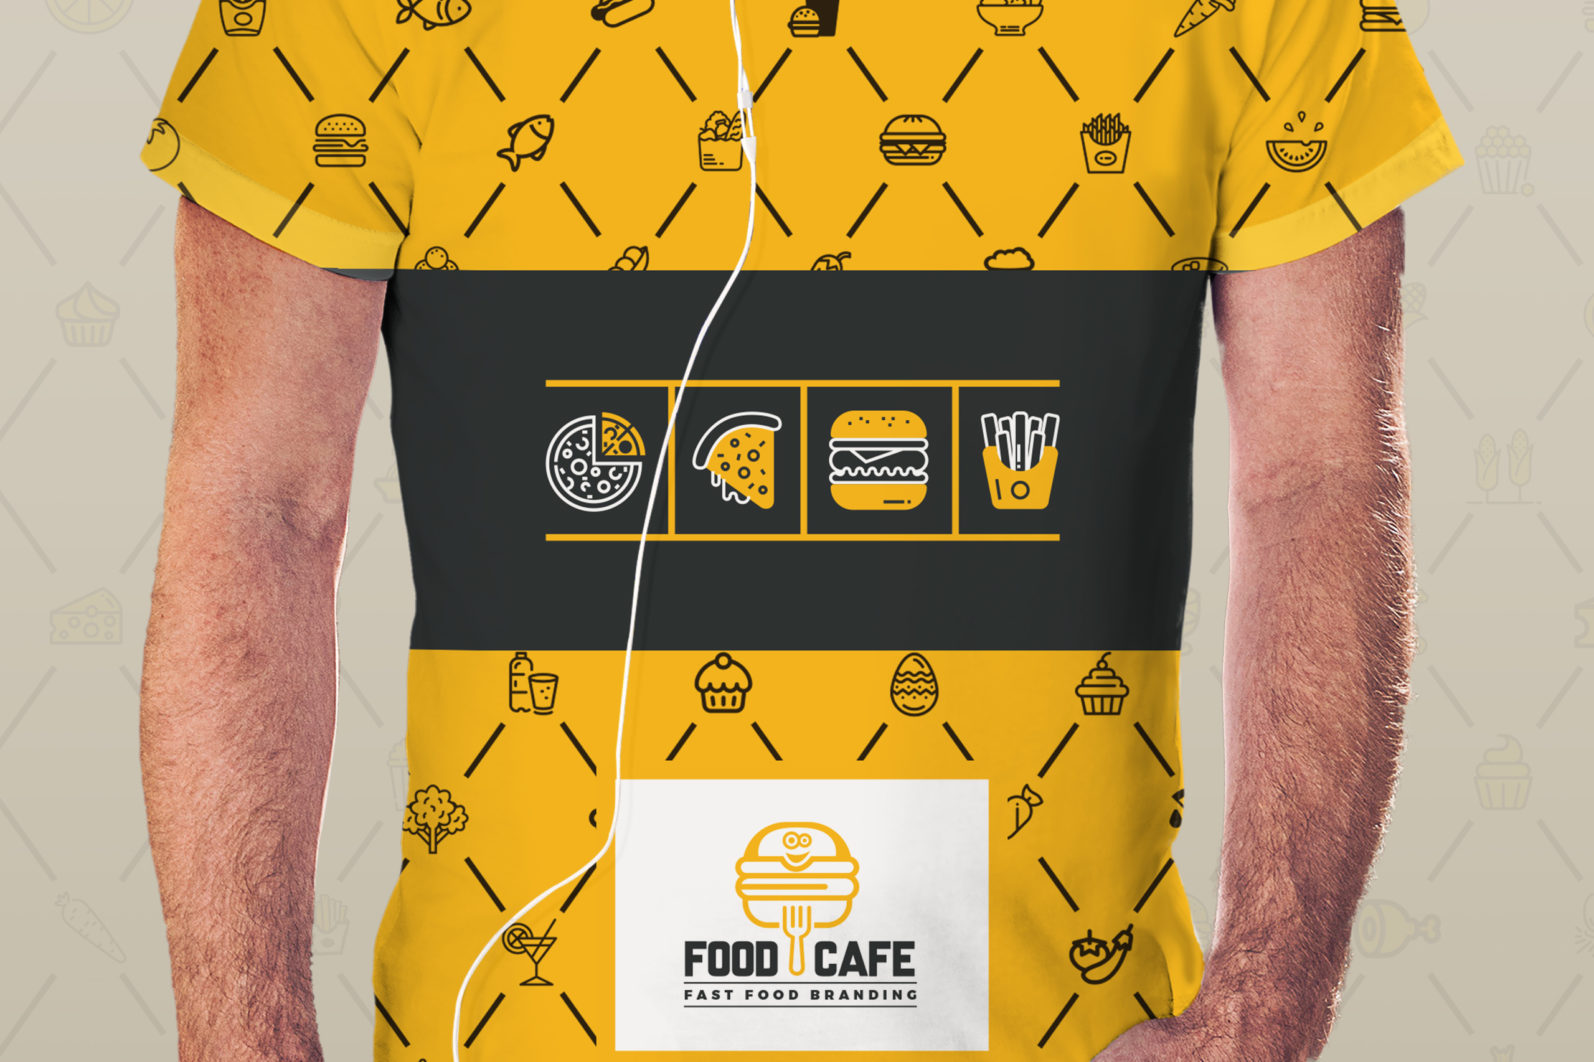 Mega Stationery Branding Identity for Fast Food and Restaurant - 19 T Shirt -